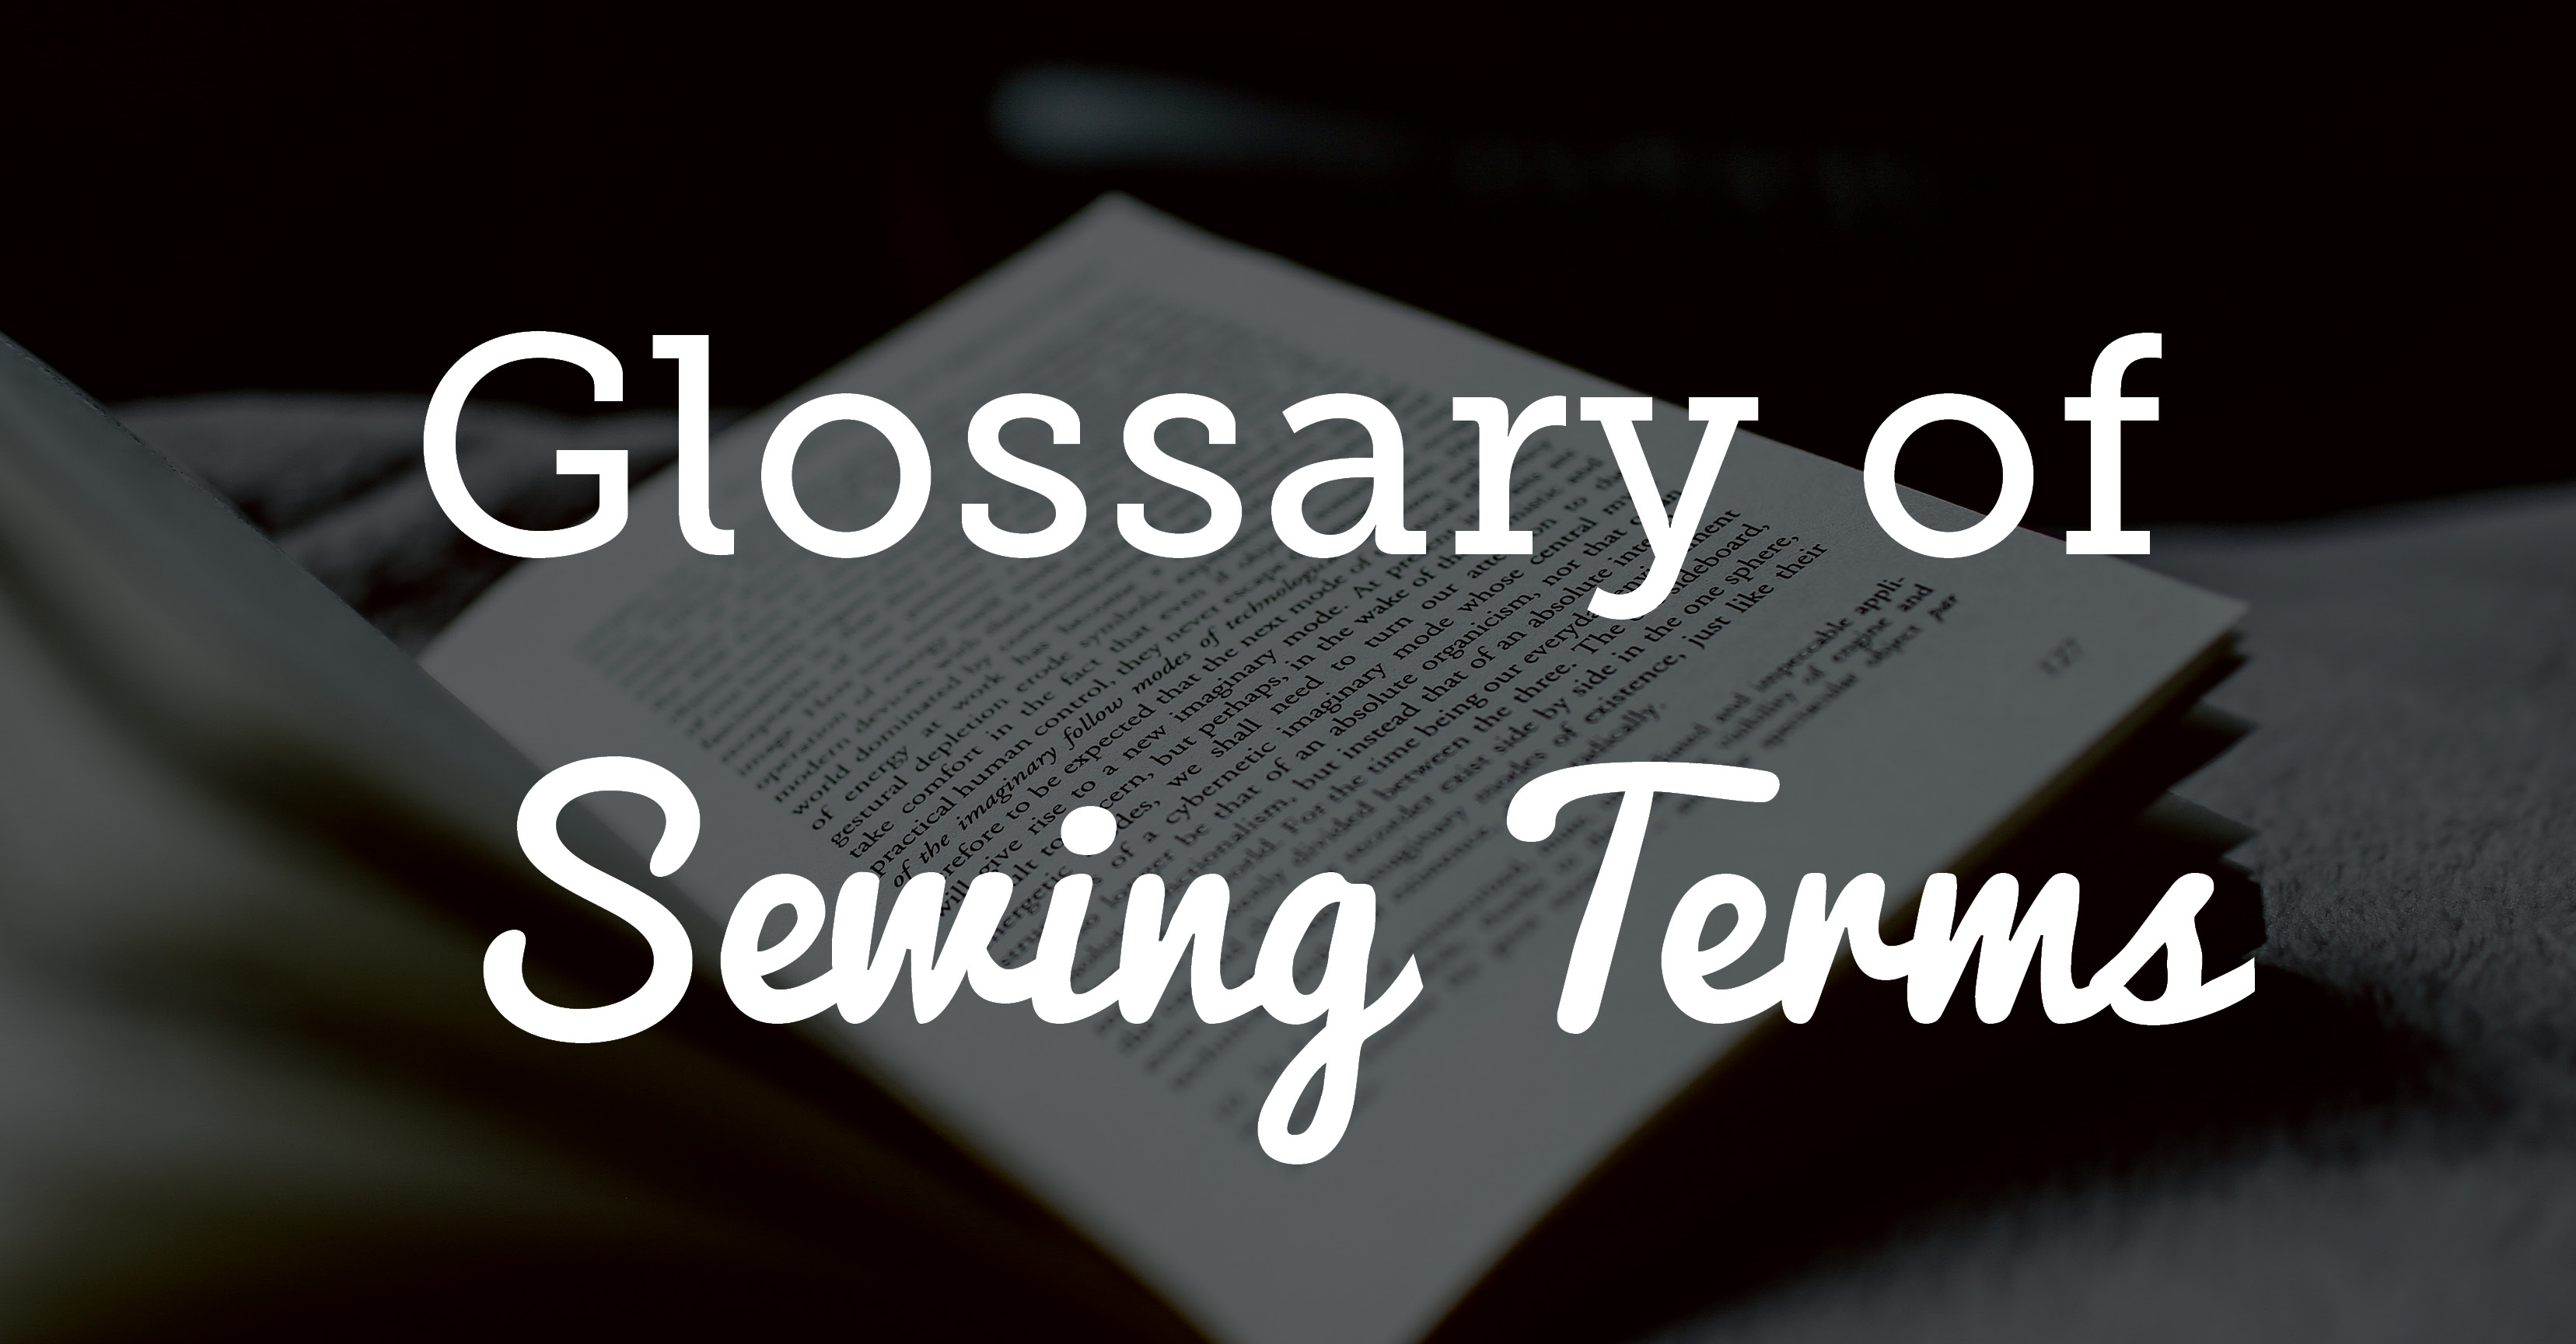 fd8def42c6 Glossary of Sewing Terms